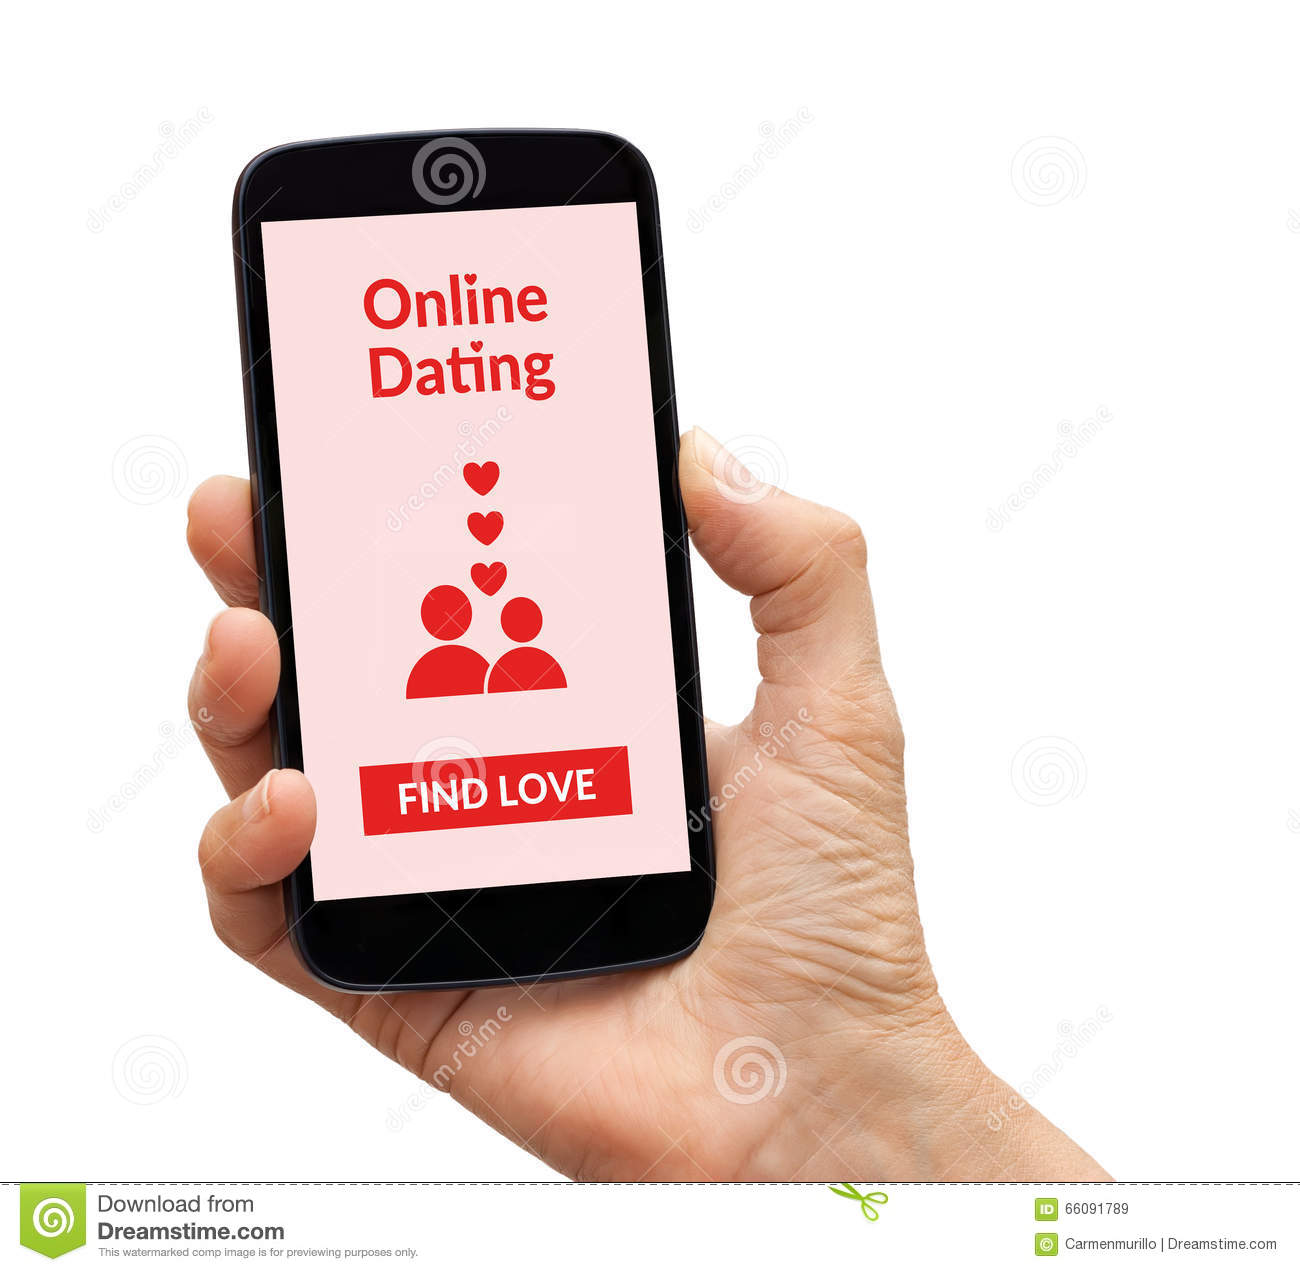 All dating prostitution apps in on app